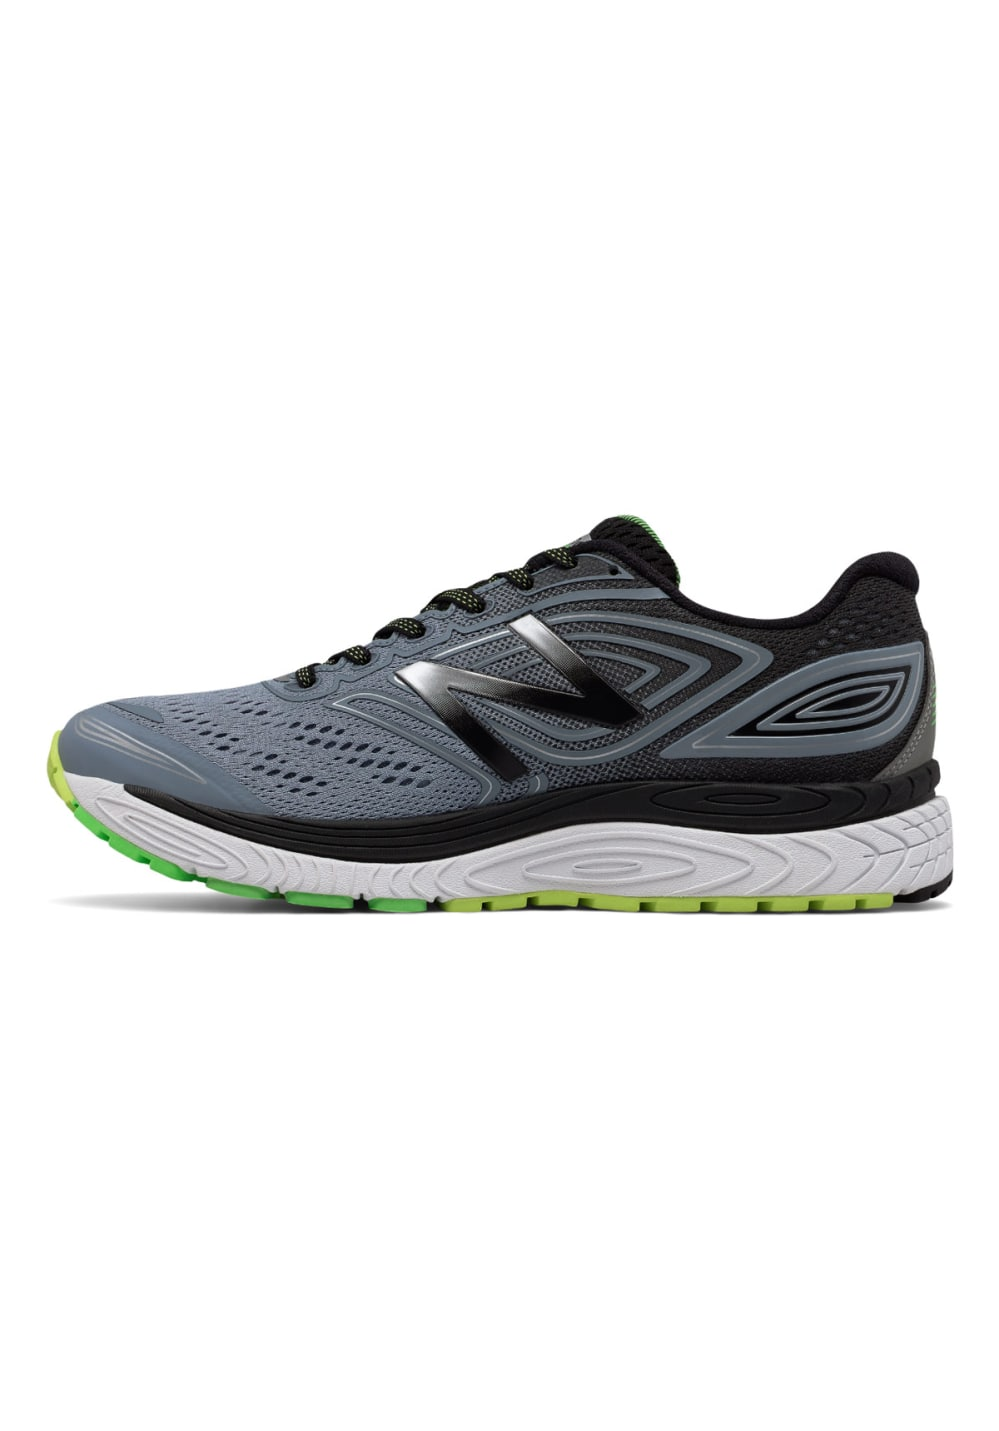 Pour New Balance Chaussures Homme V7 Running 21run Gris 880 M D rrqawO0x